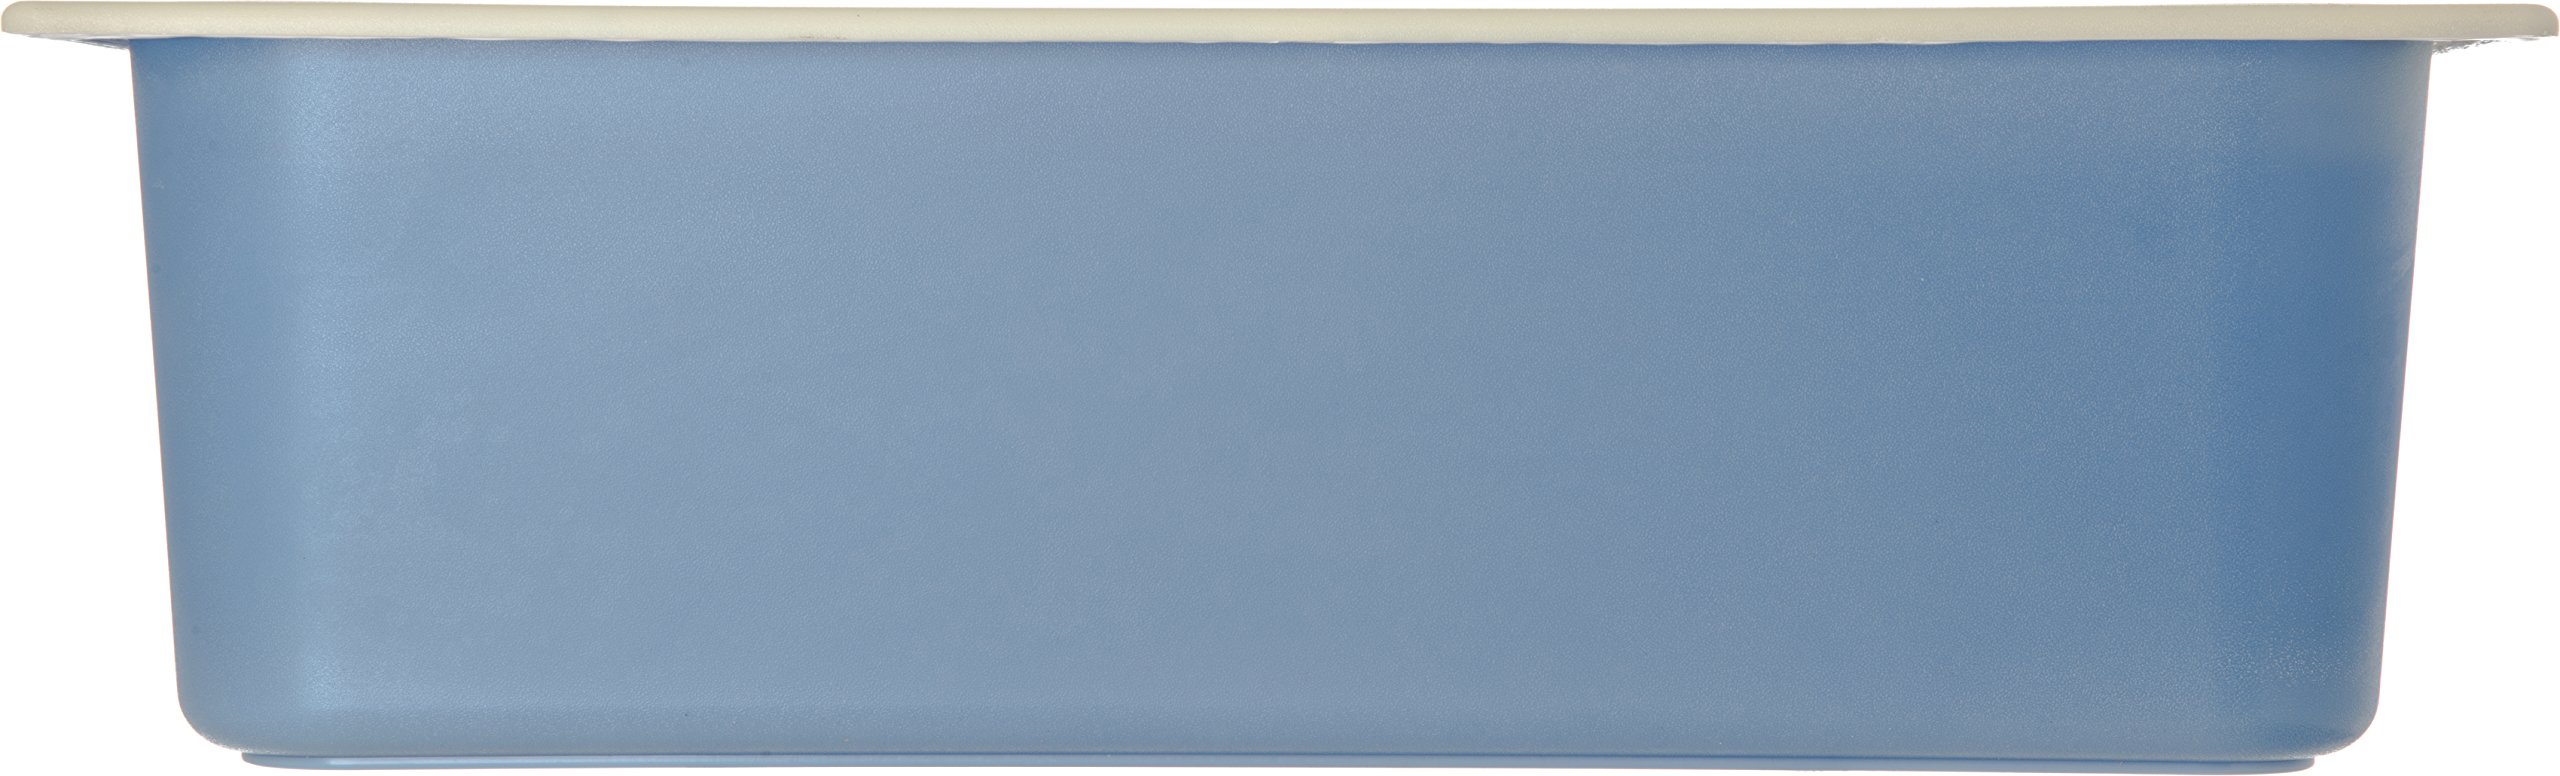 Carlisle CM1100C1402 Coldmaster CoolCheck 6'' Deep Full-Size Insulated Cold Food Pan, 15 Quart, Color Changing, White/Blue by Carlisle (Image #2)